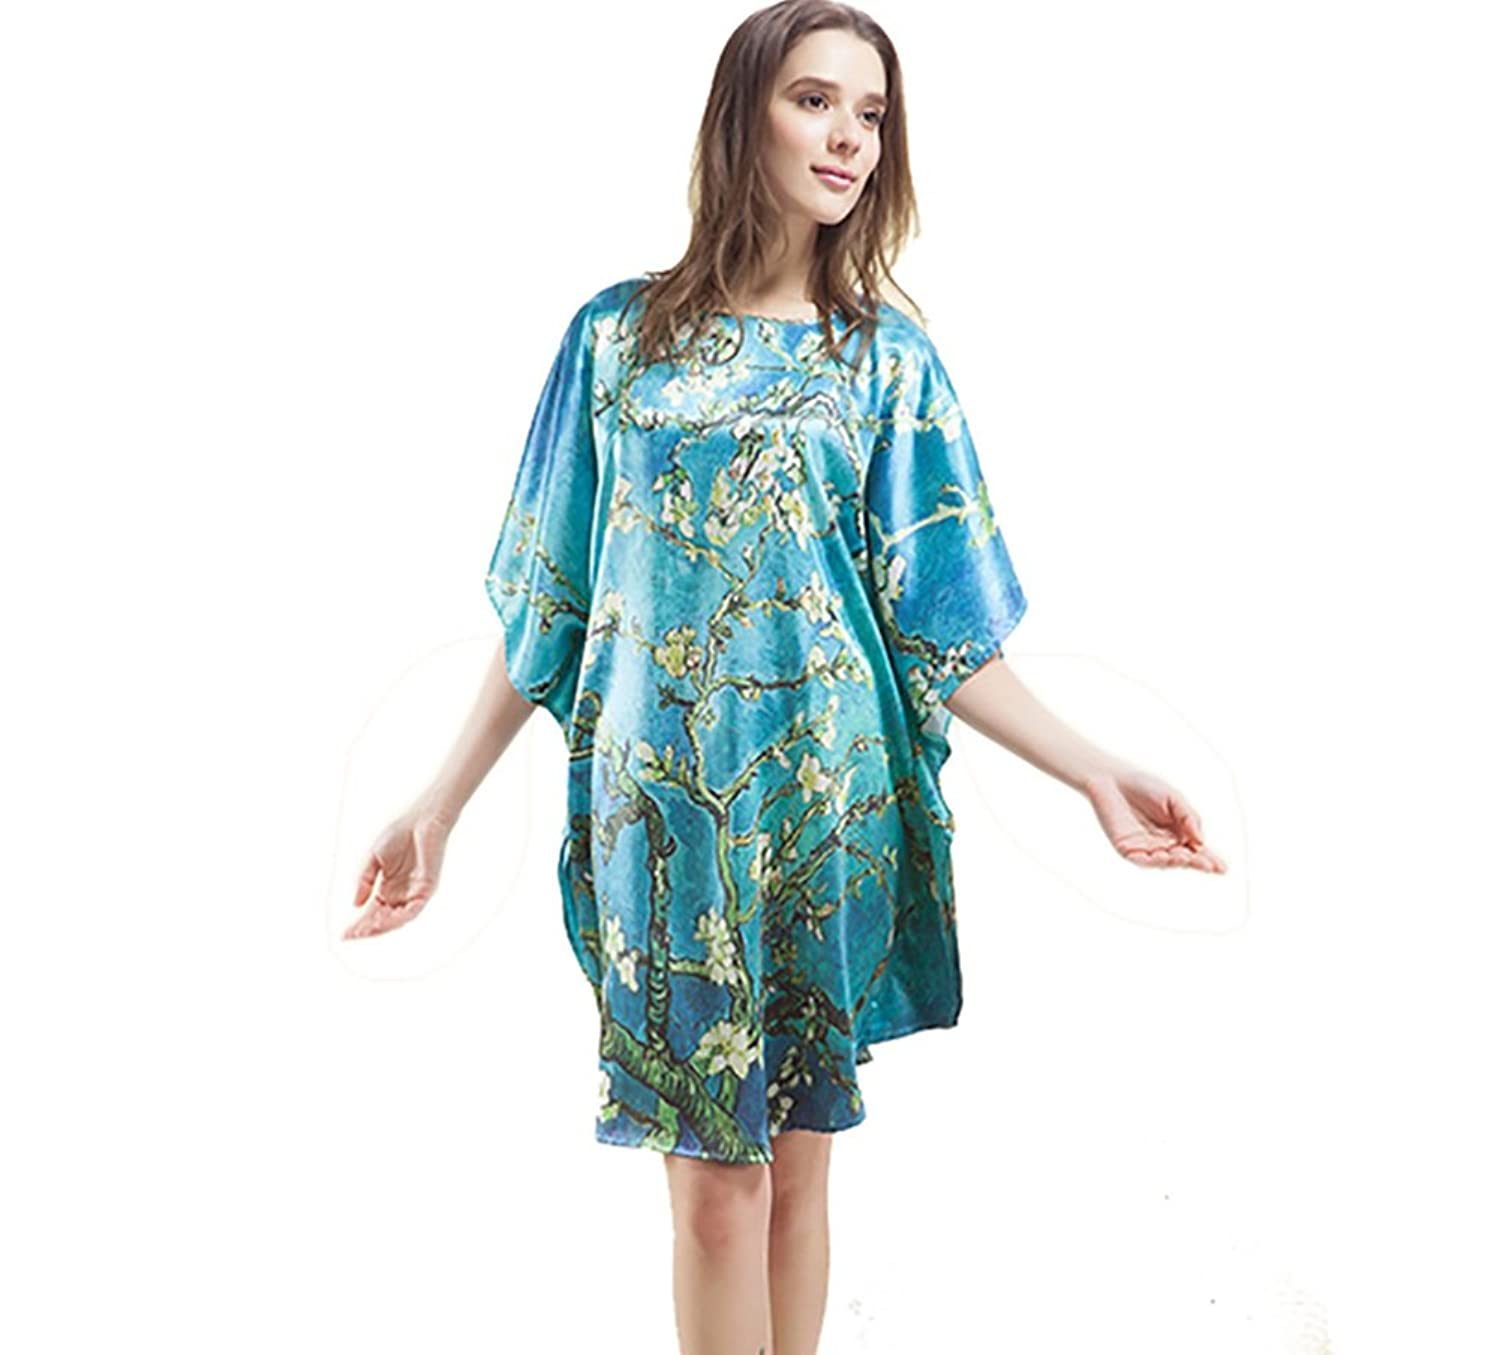 SILKTALK Ladies Blue Plus Size 1/2 Bat Sleeves Nightgown Sleepwear 100% Silk Plum Print Negligee Nightdress